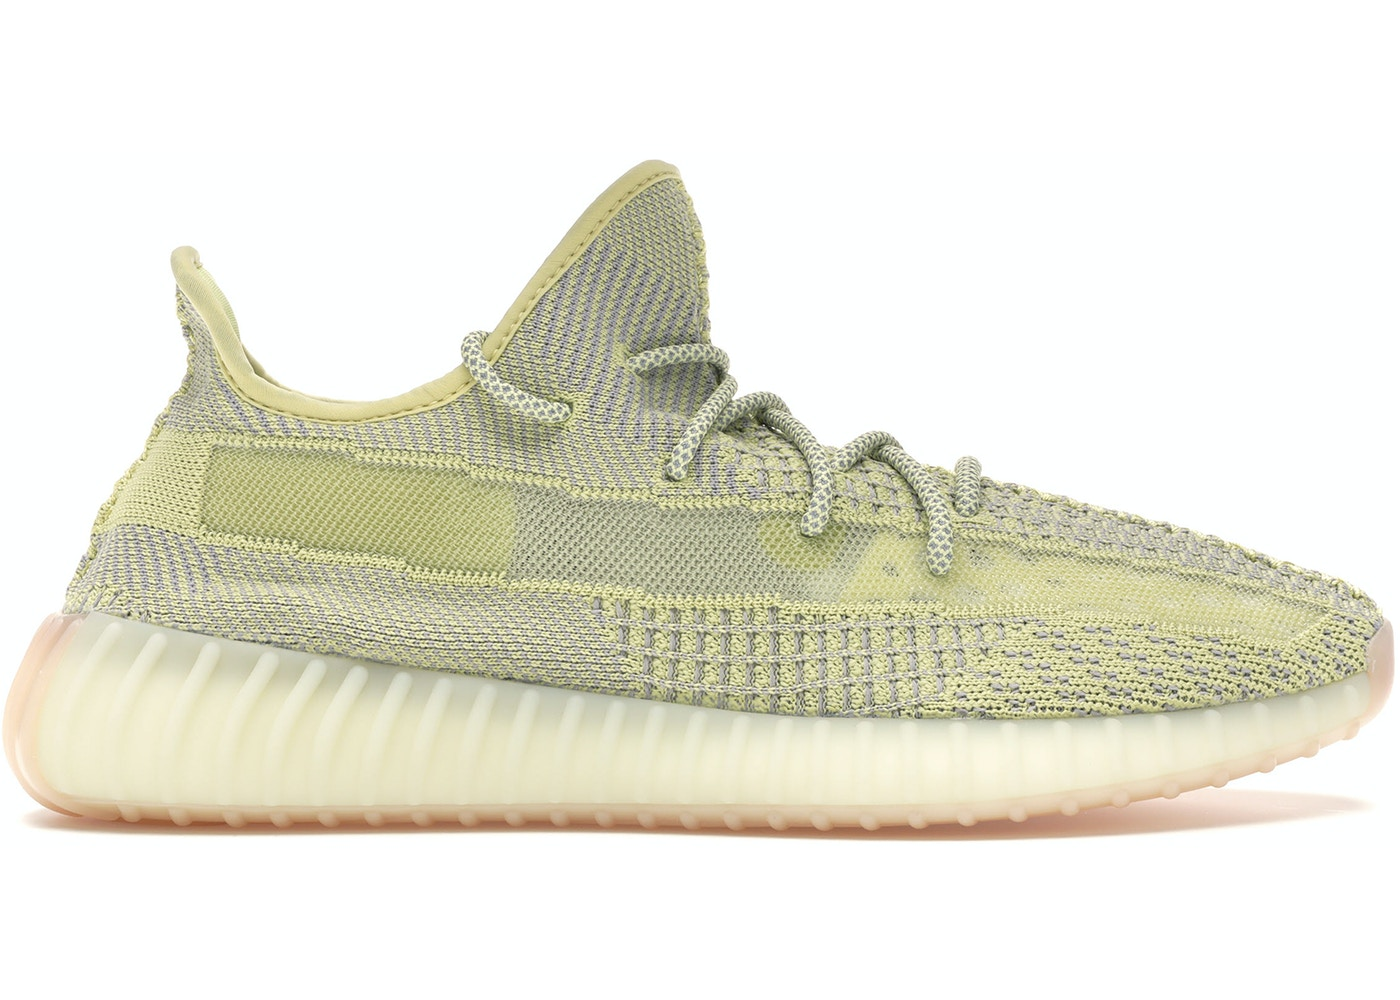 new style 6a3d0 fce45 Buy adidas Yeezy Shoes & Deadstock Sneakers